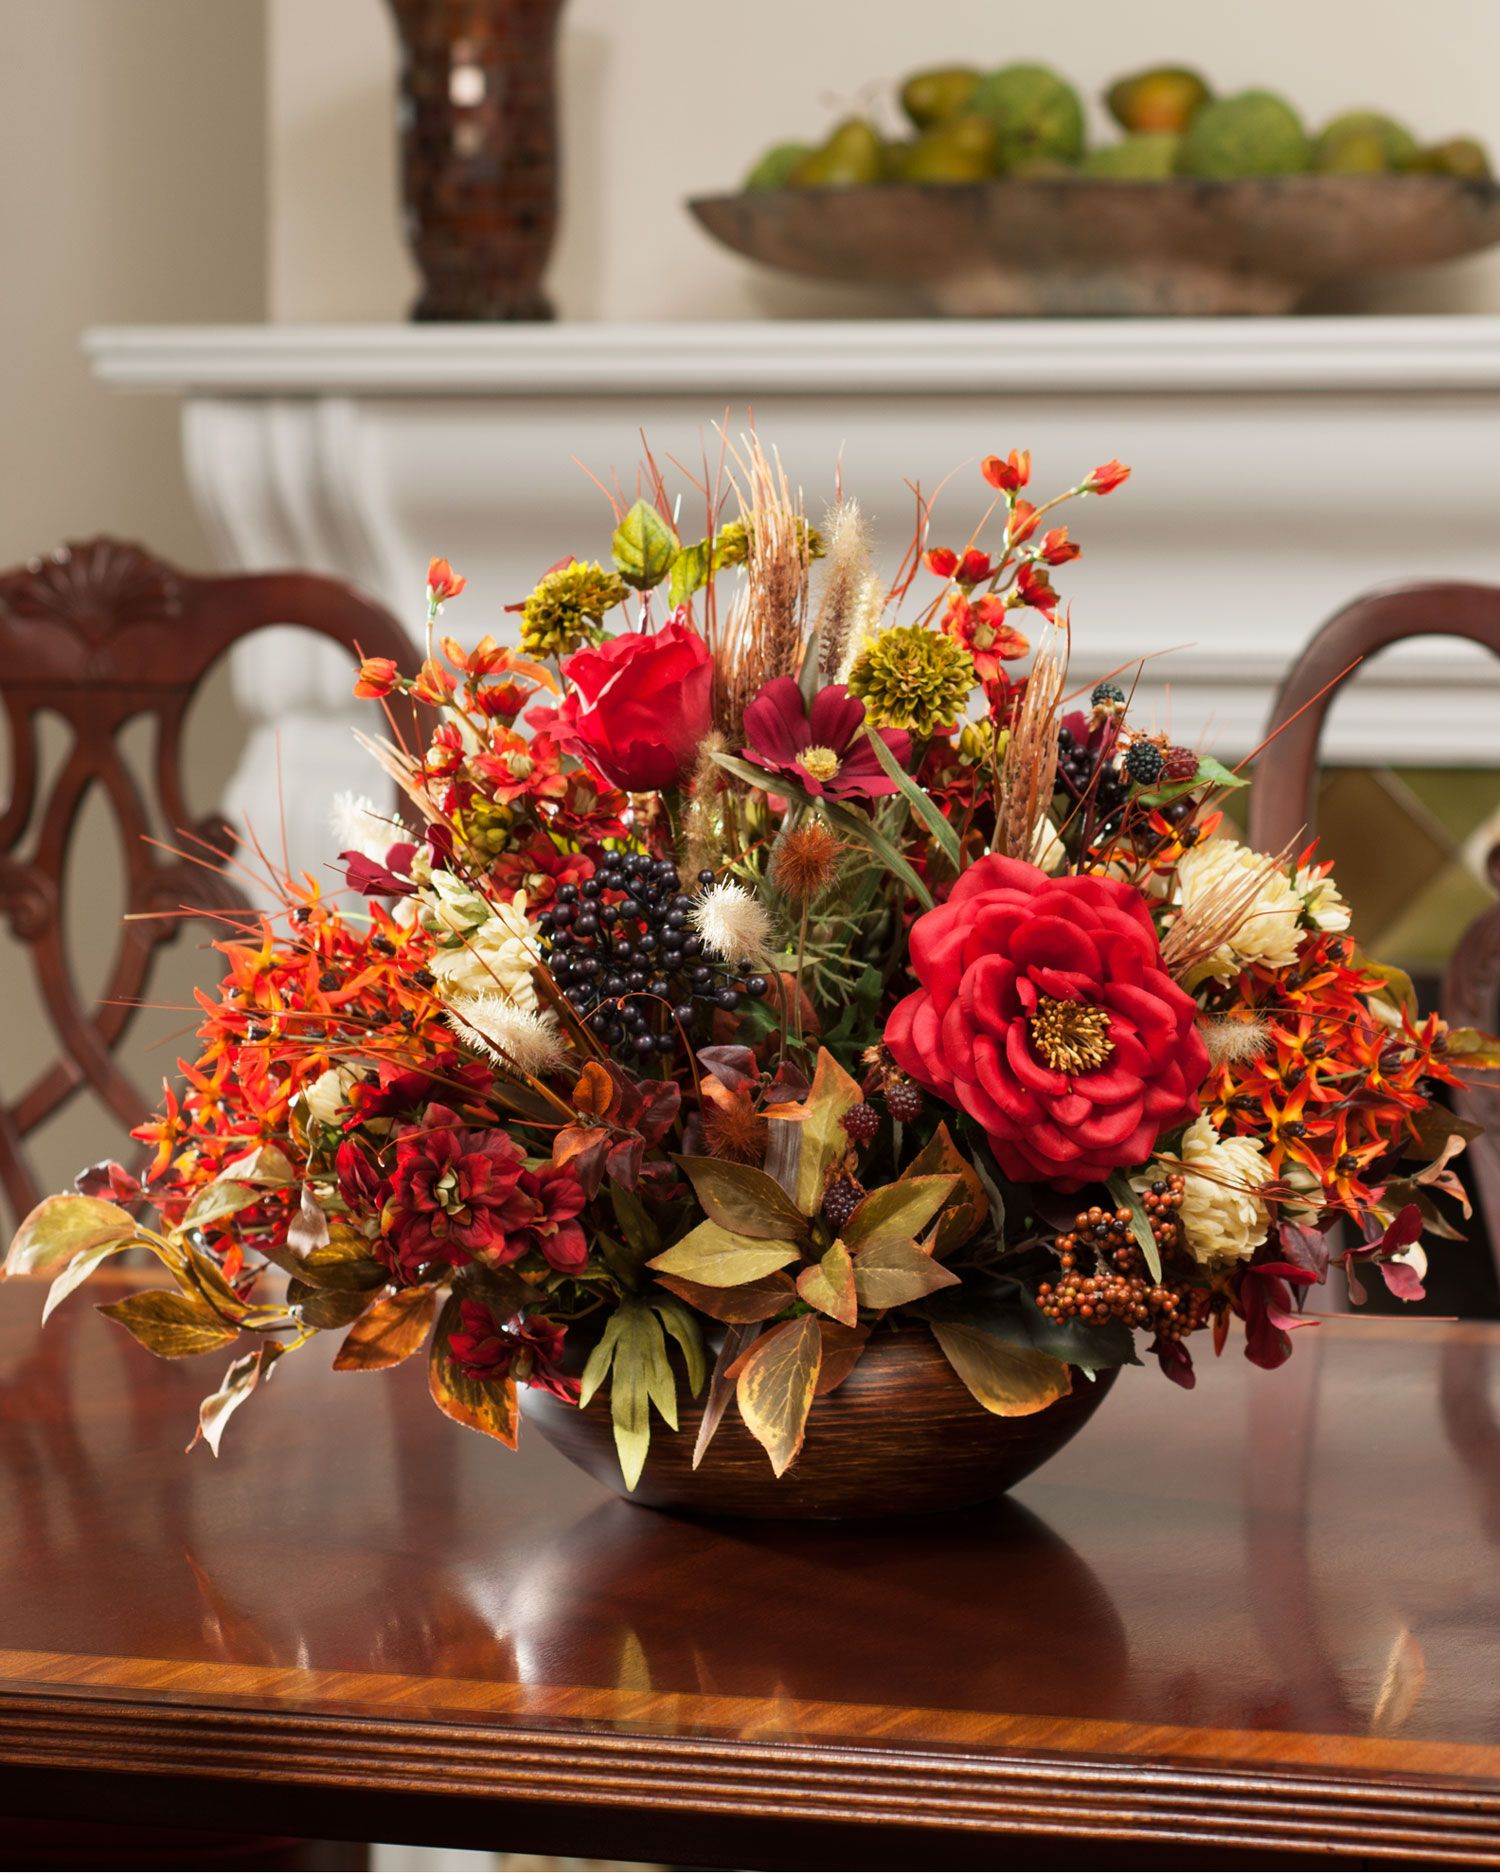 Fall silk flower centerpieces at petals bountiful autumn centerpiece flower fall silk flower centerpieces at petals bountiful autumn centerpiece fall home decor mightylinksfo Image collections